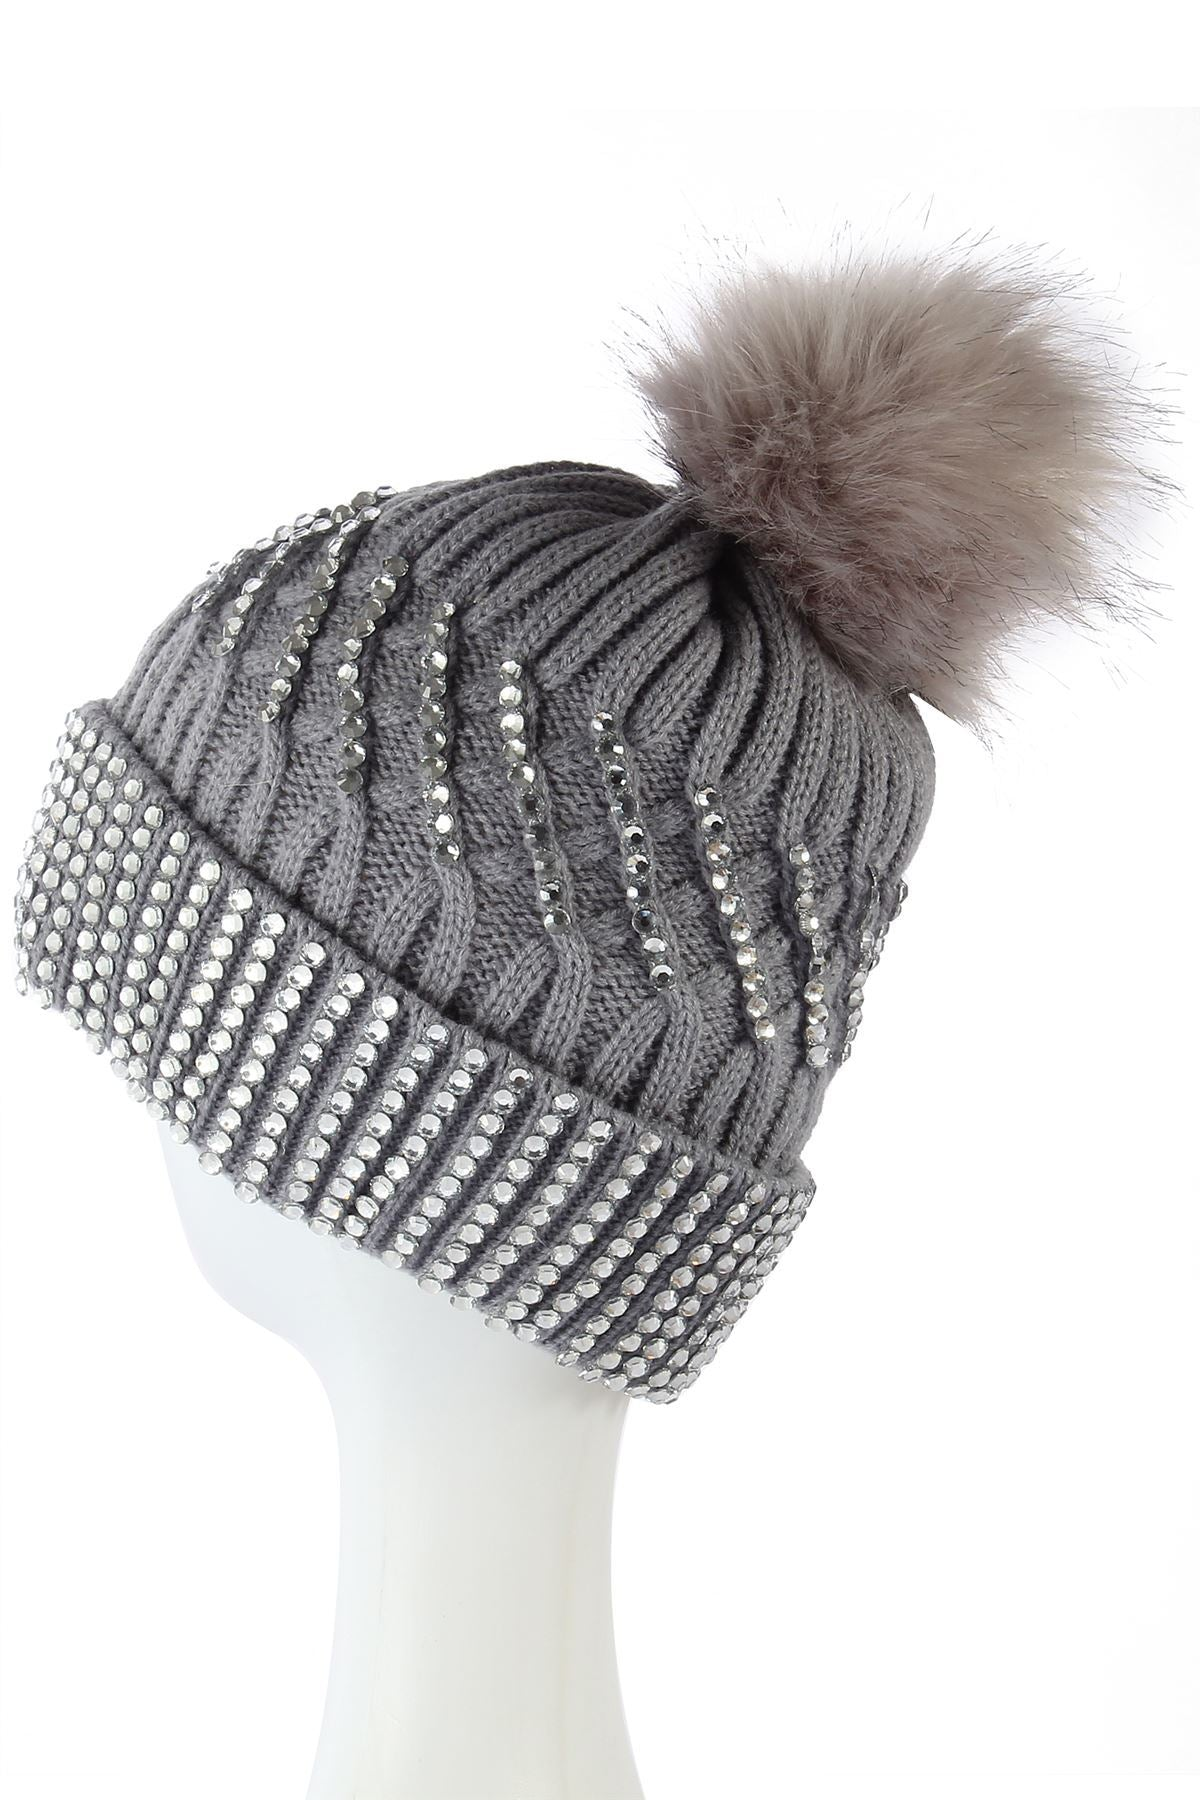 X Large Diamante Faux Fur Pom Pom Beanie Hat- GREY  Woman Knitted Hat